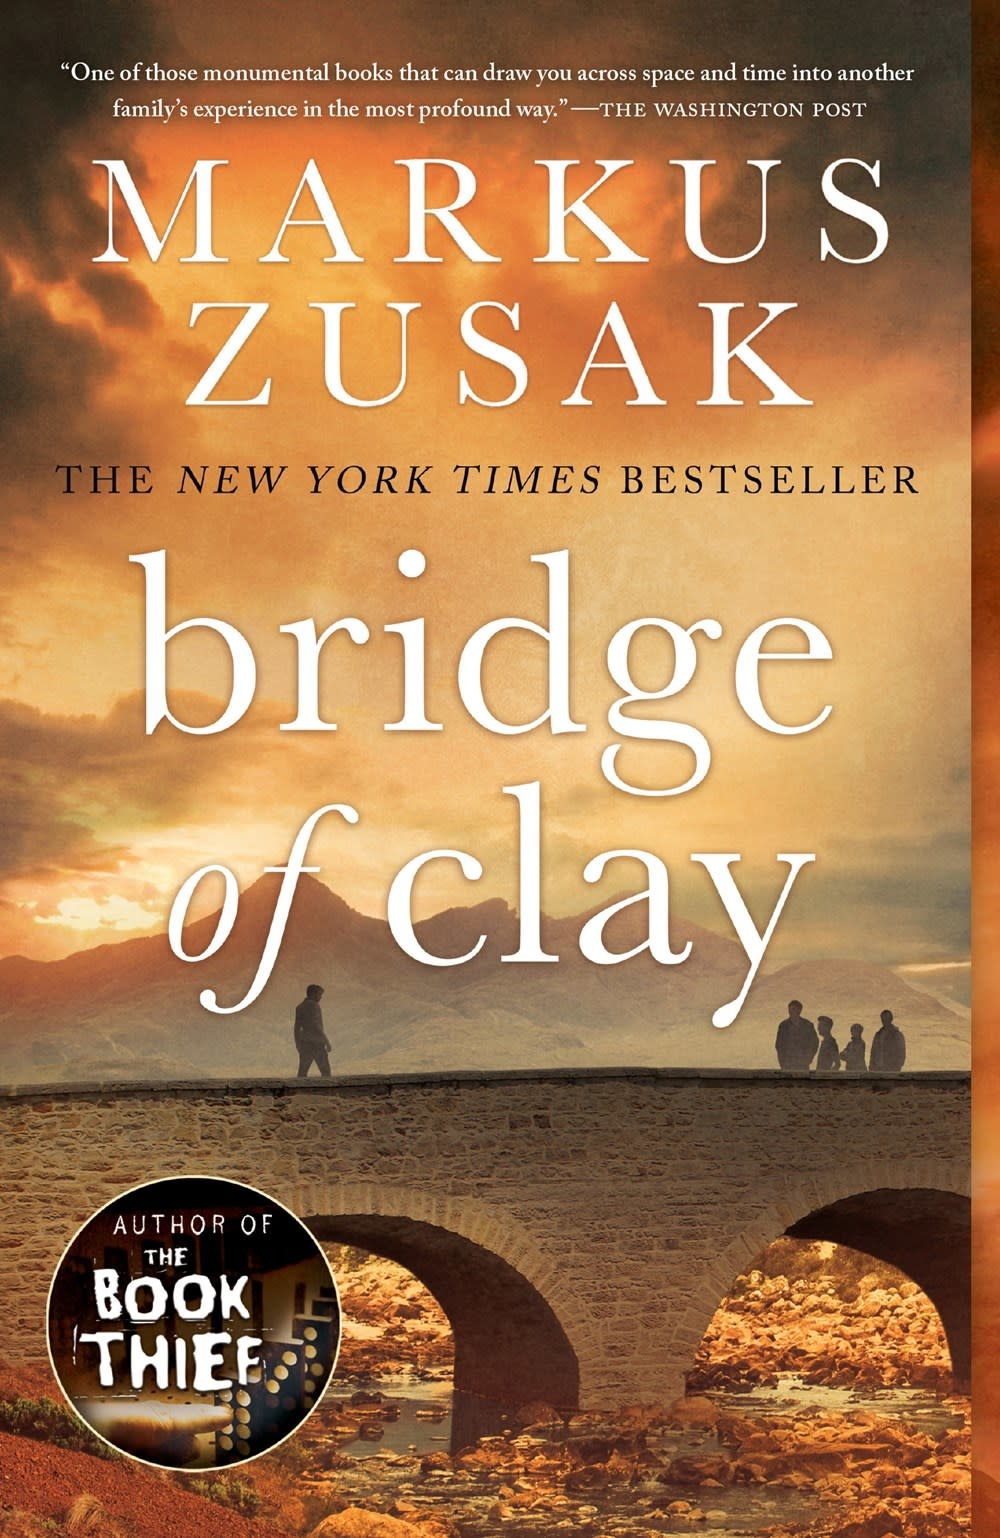 Knopf Books for Young Readers Bridge of Clay